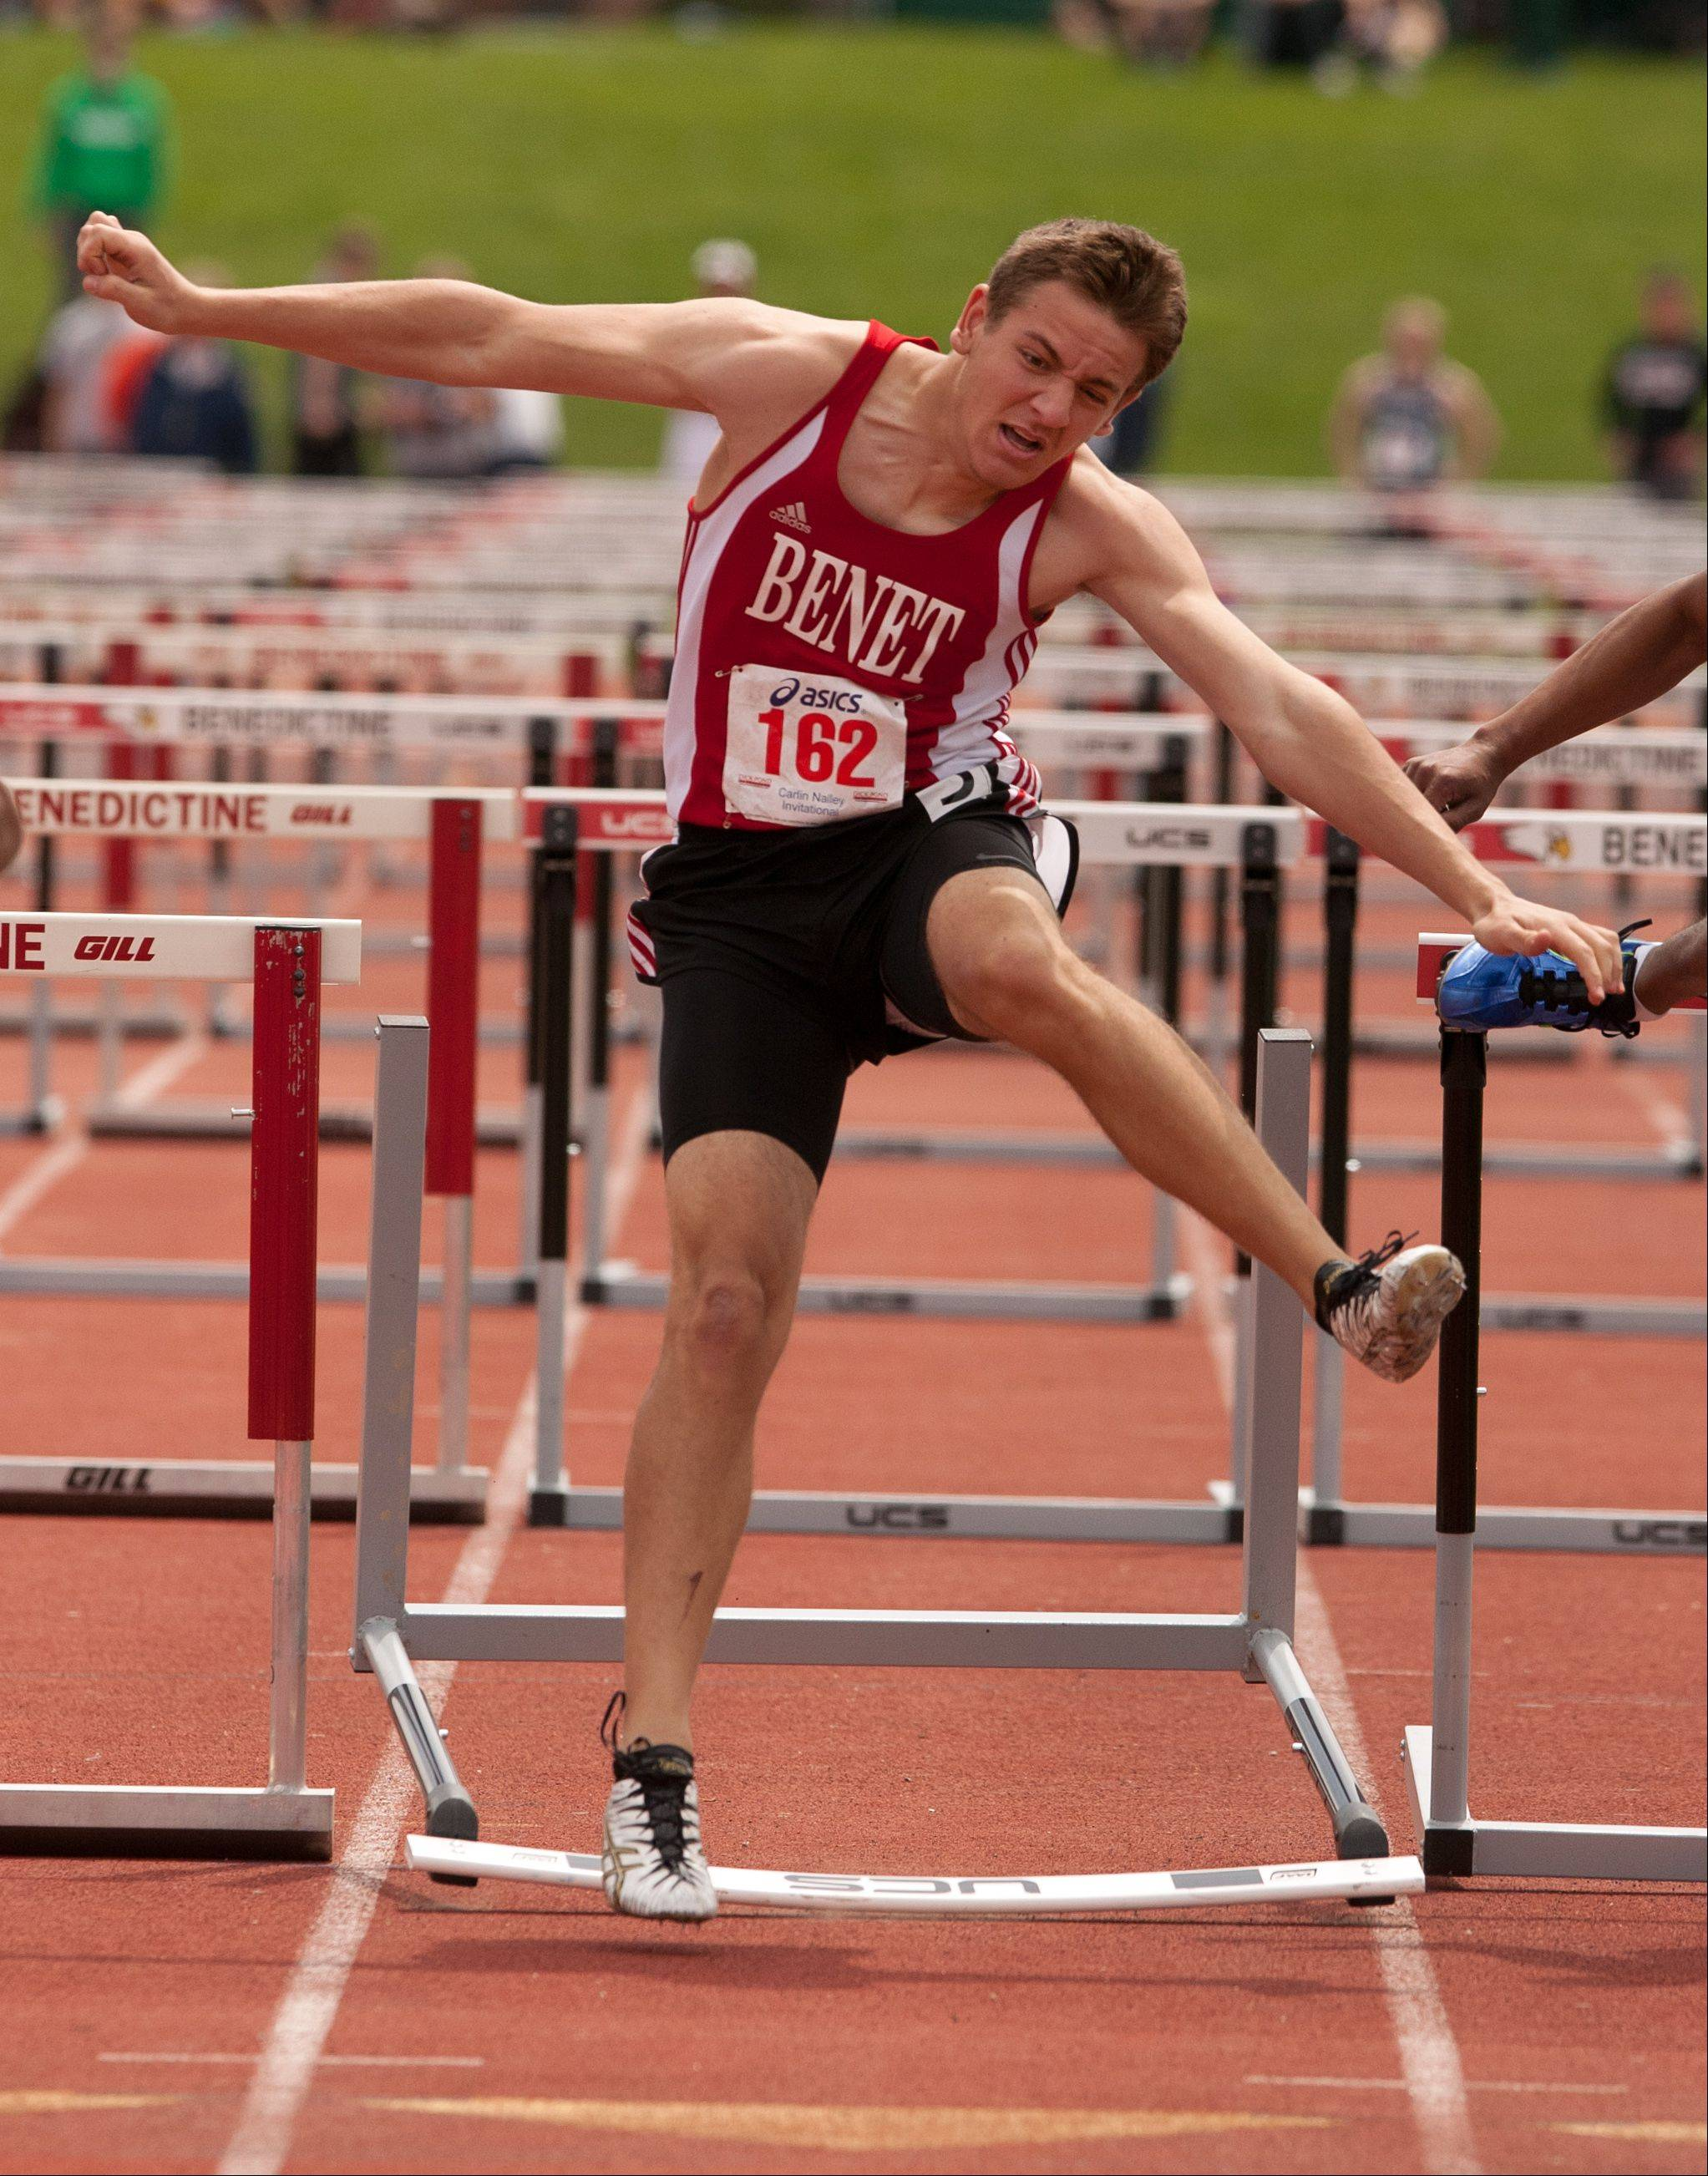 Benet's Austin Dzik competes in the 110 meter hurdles during the 46th annual Carlin Nalley Boys� Track Invitational at Benedictine University in Lisle.